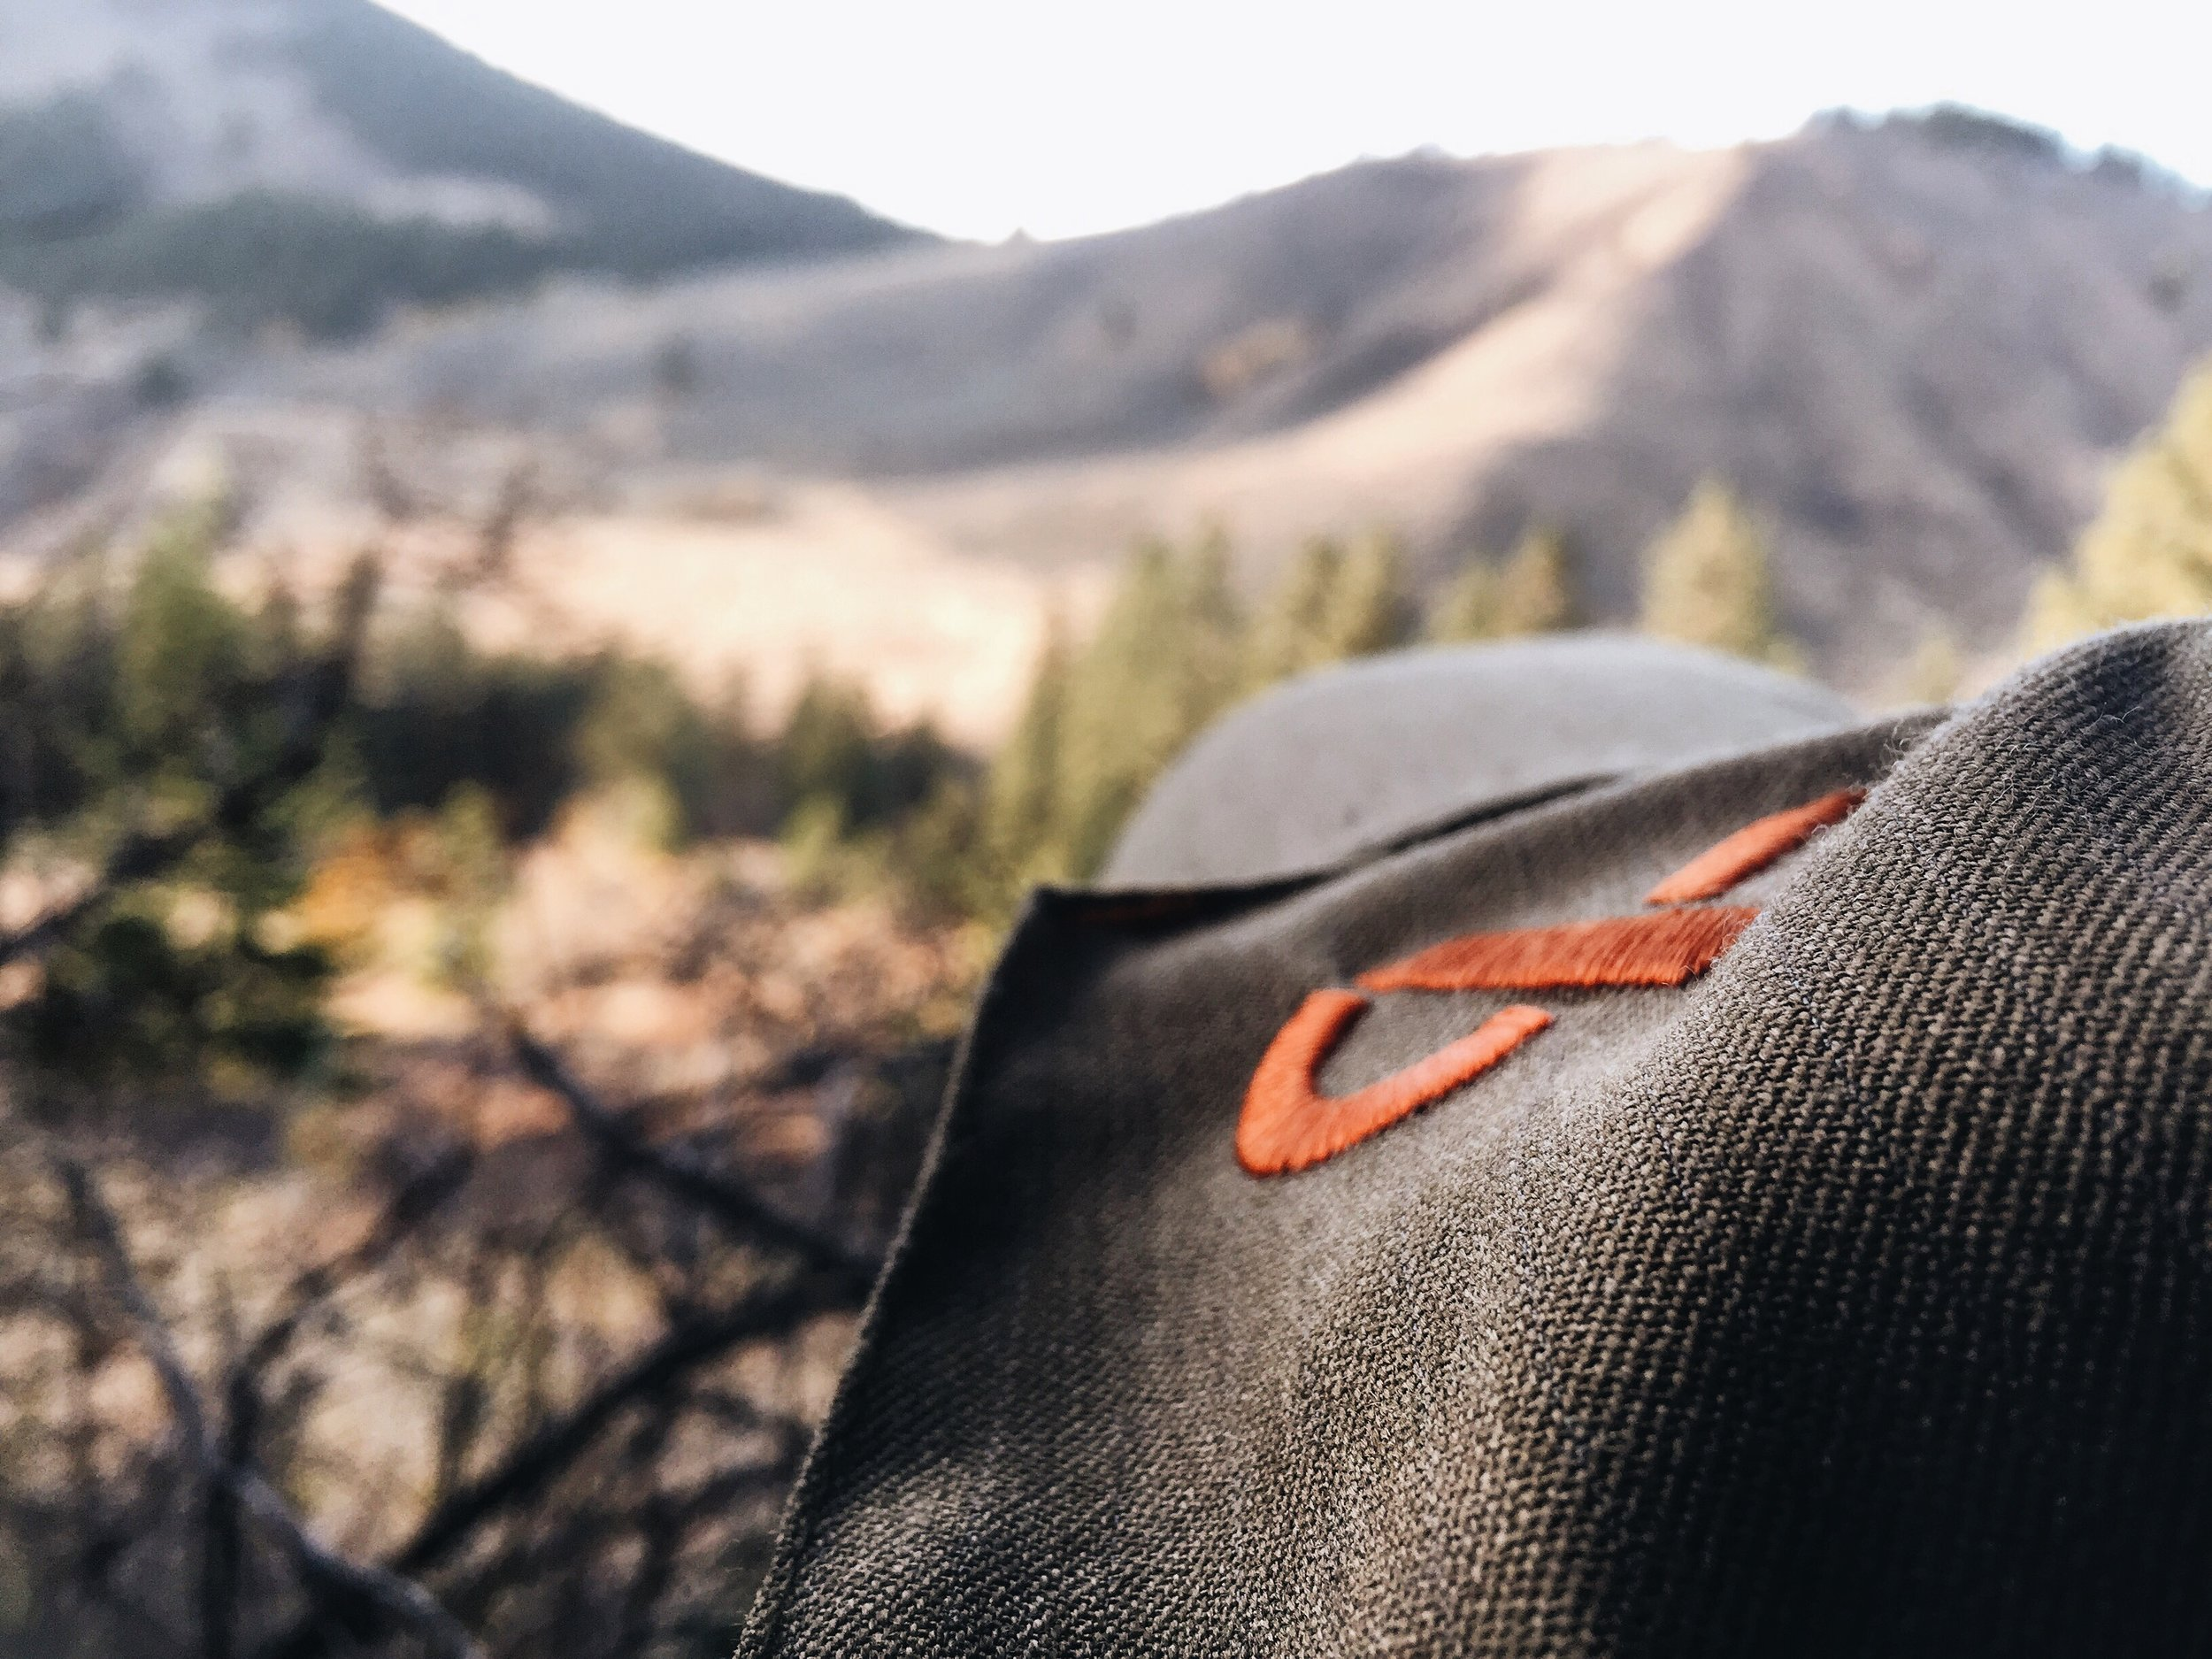 My first outing with the First Lite Kanab pant was during Washington's rifle deer season. Hiking around the hills of Winthrop, WA was a great place to get a feel for how they'd perform.